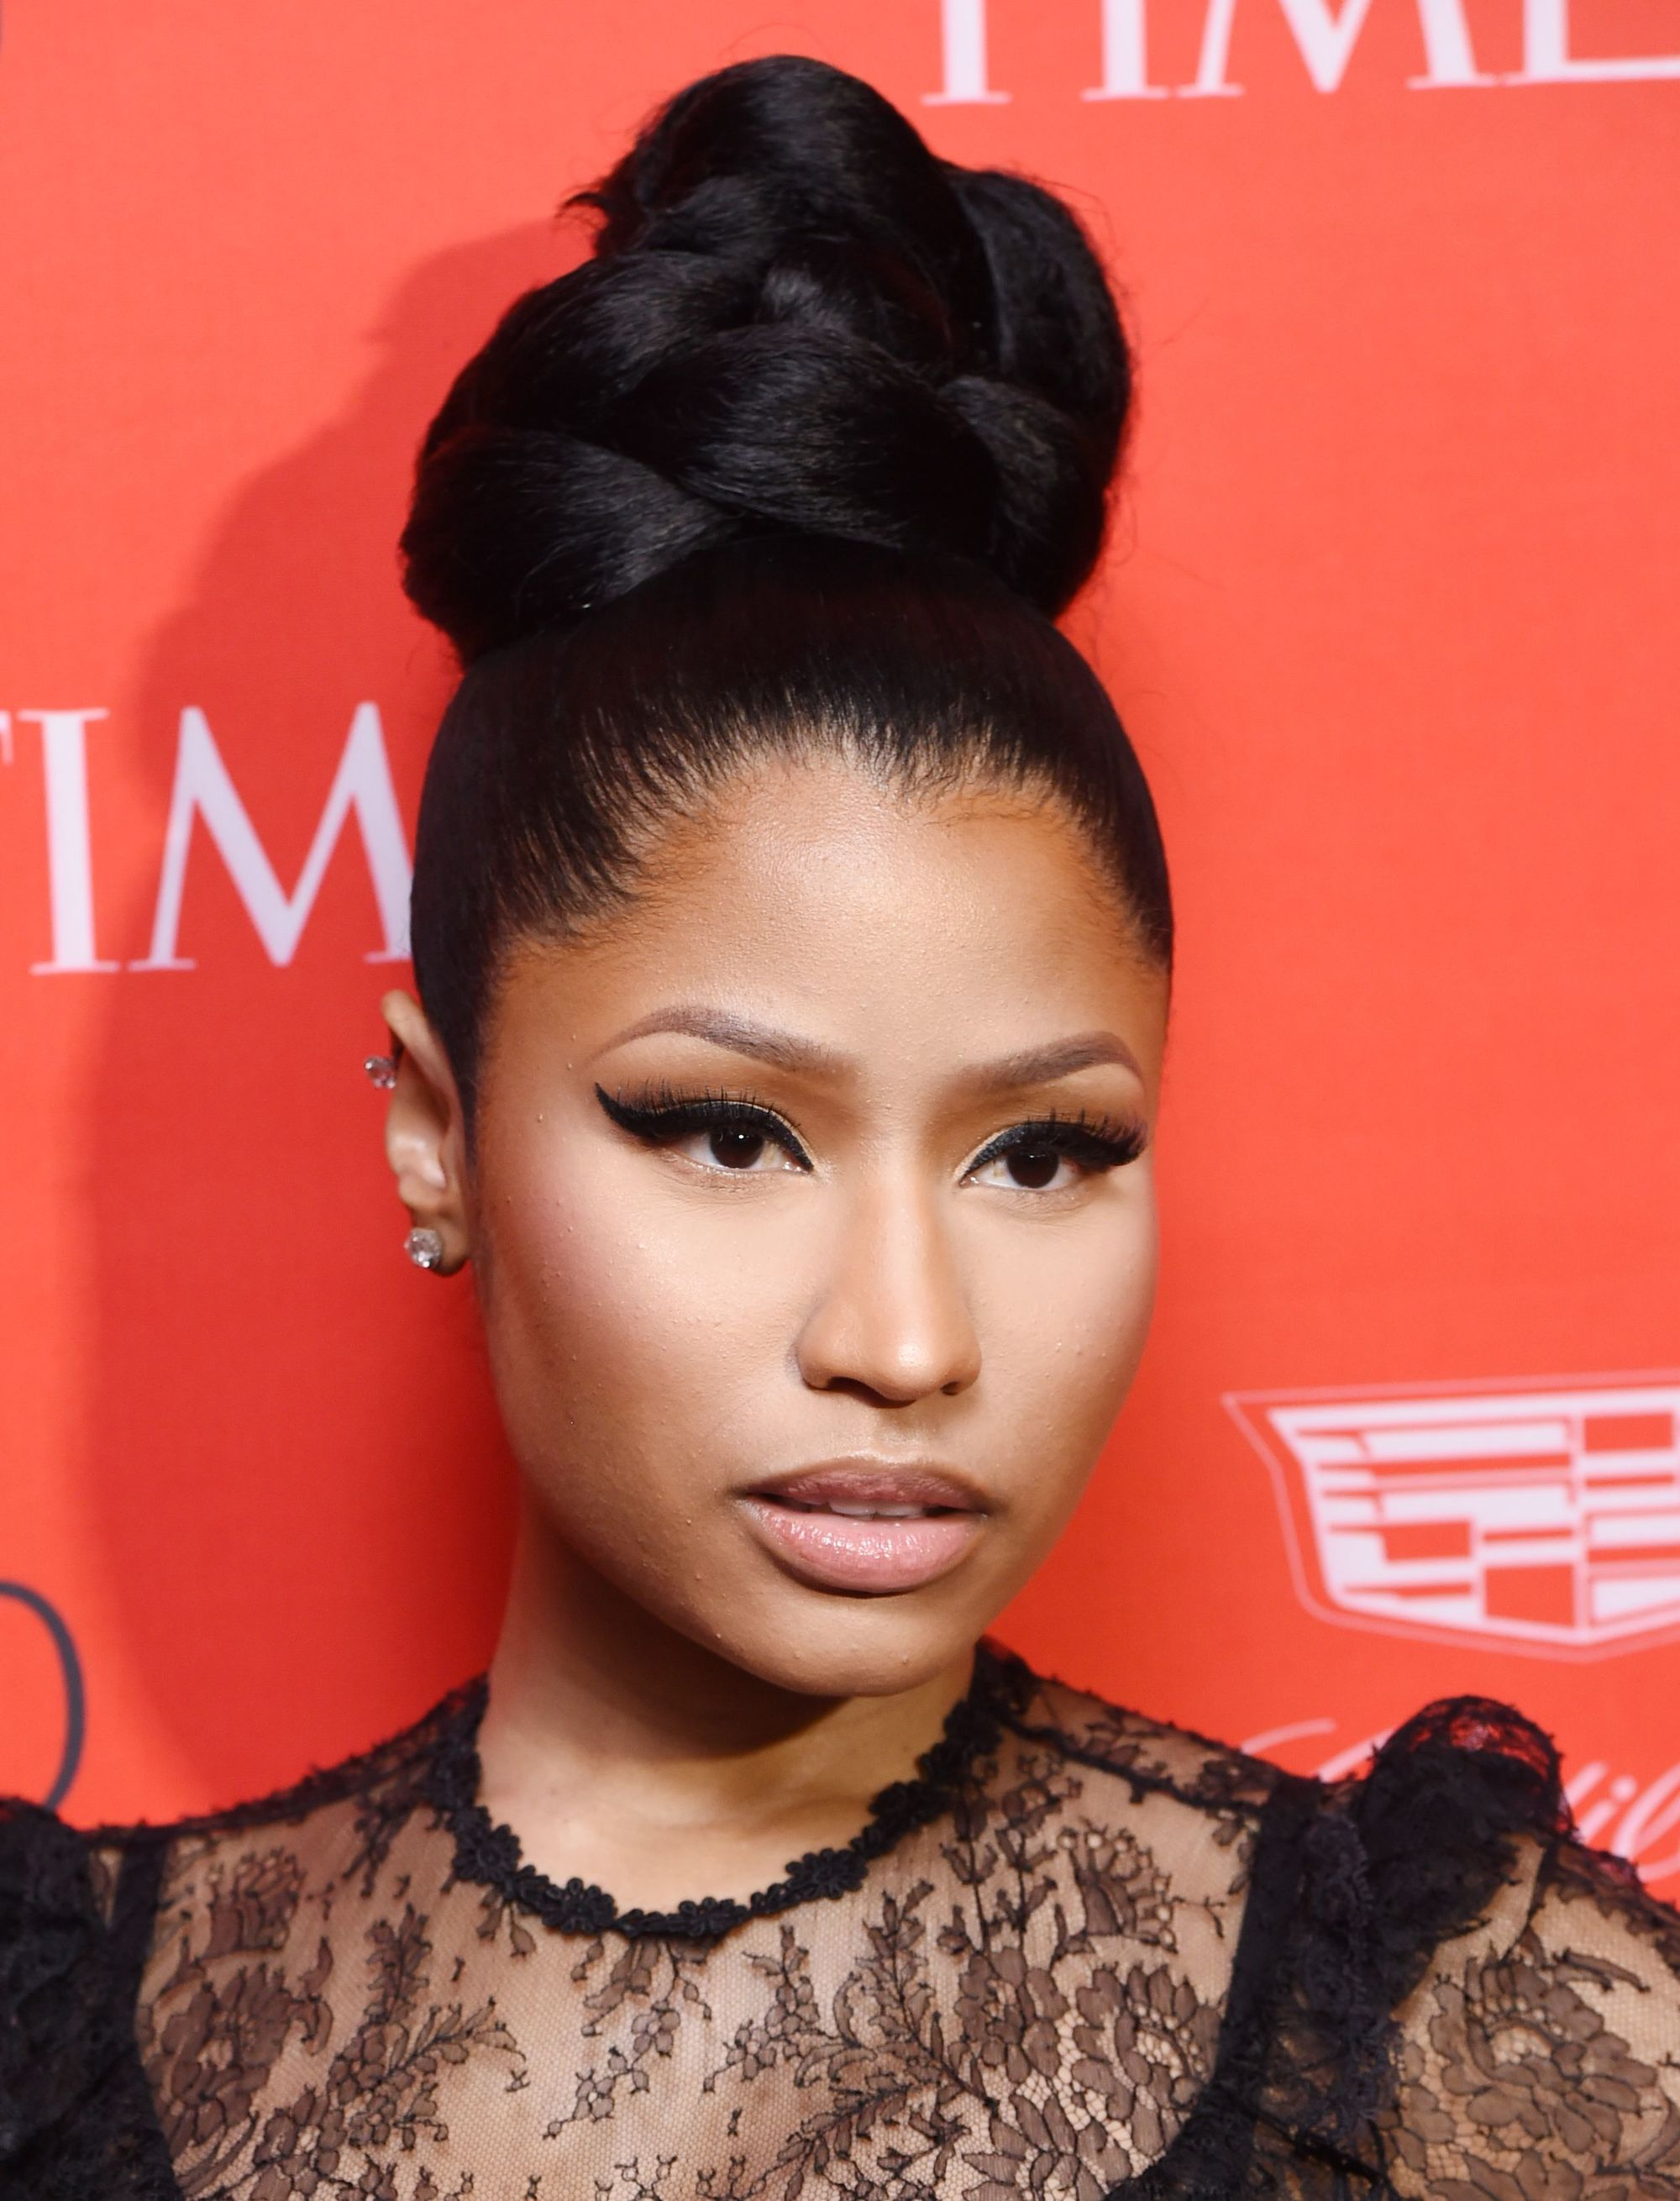 Front View Of Nicki Minaj With Dark Hair In High Braided Bun Updo